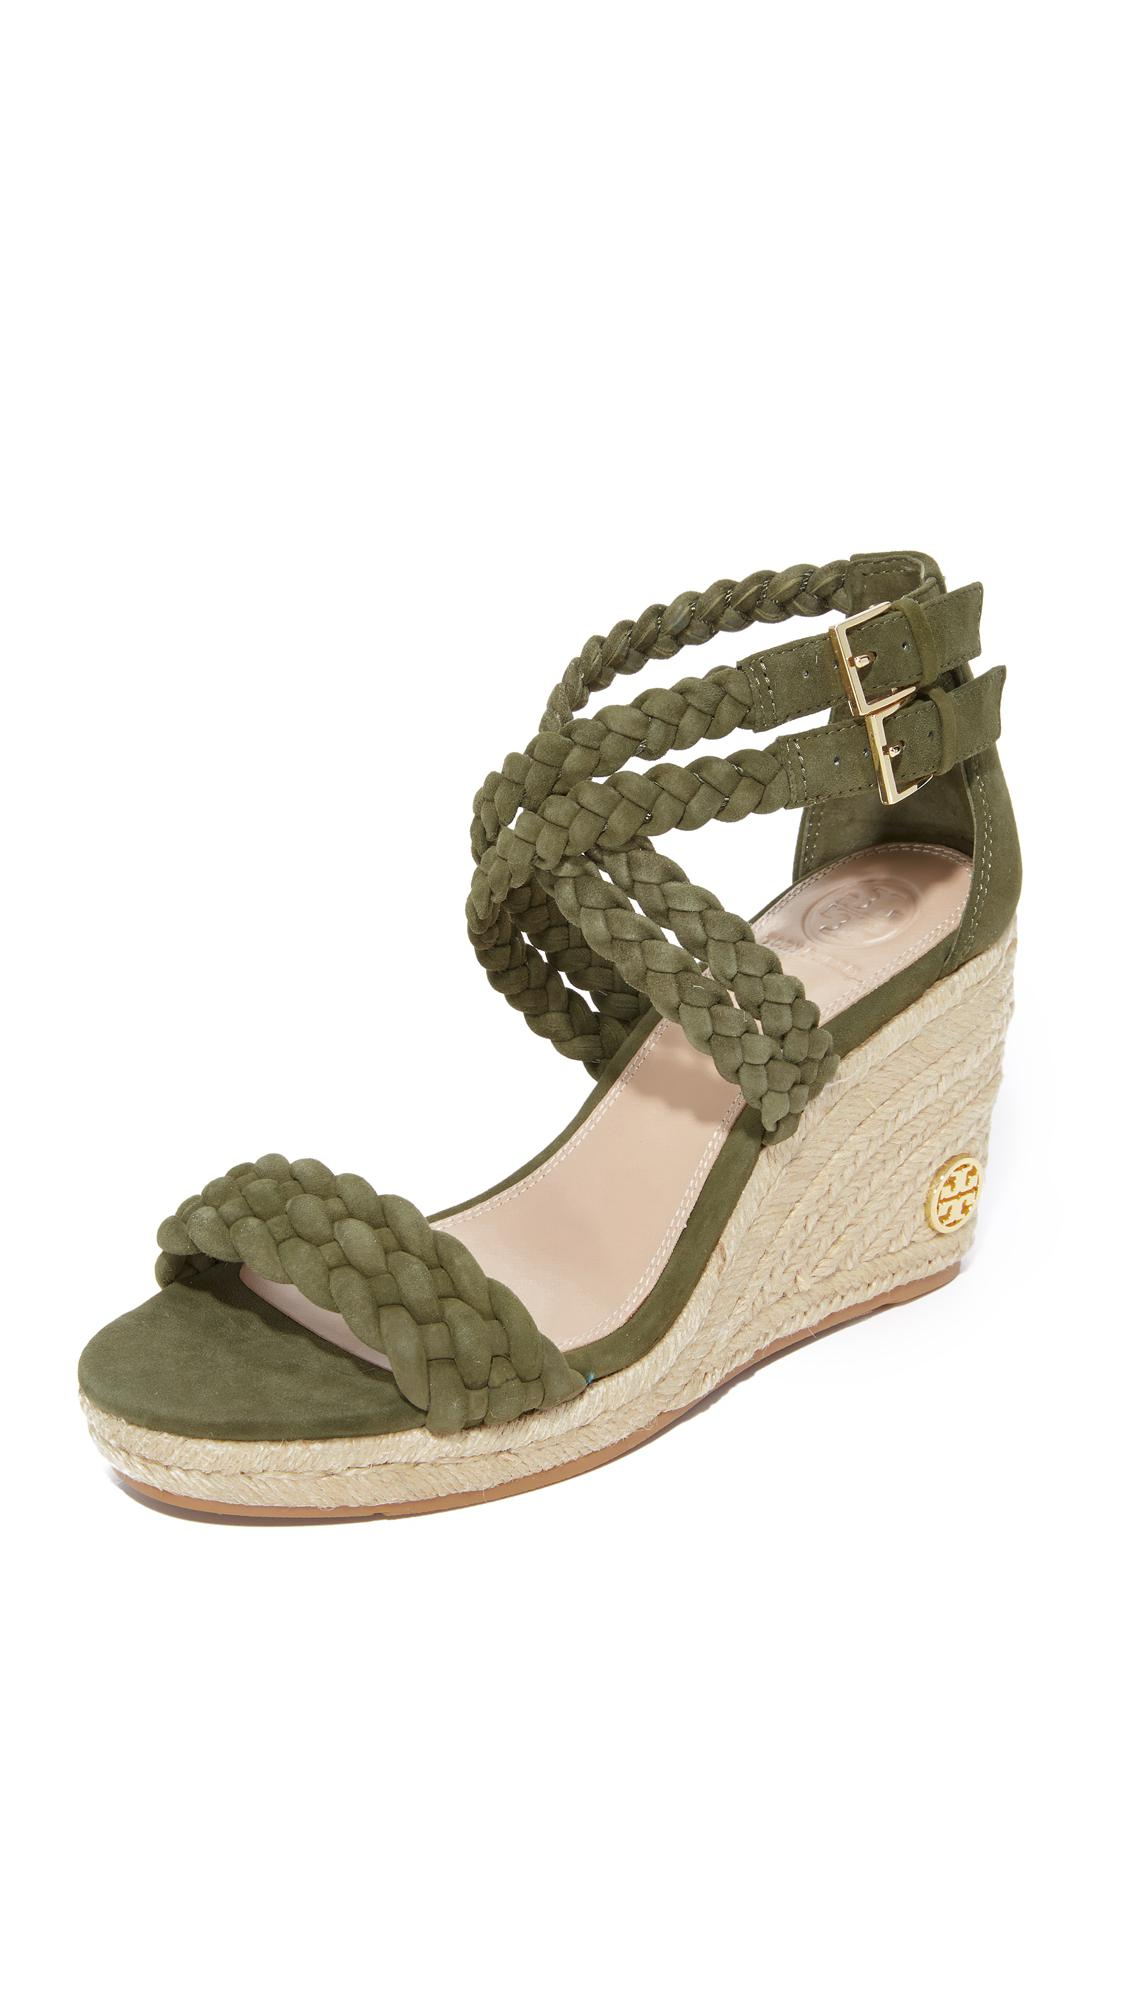 1177ac94d64a Lyst - Tory Burch Bailey 90mm Ankle Strap Wedge Espadrilles in Green